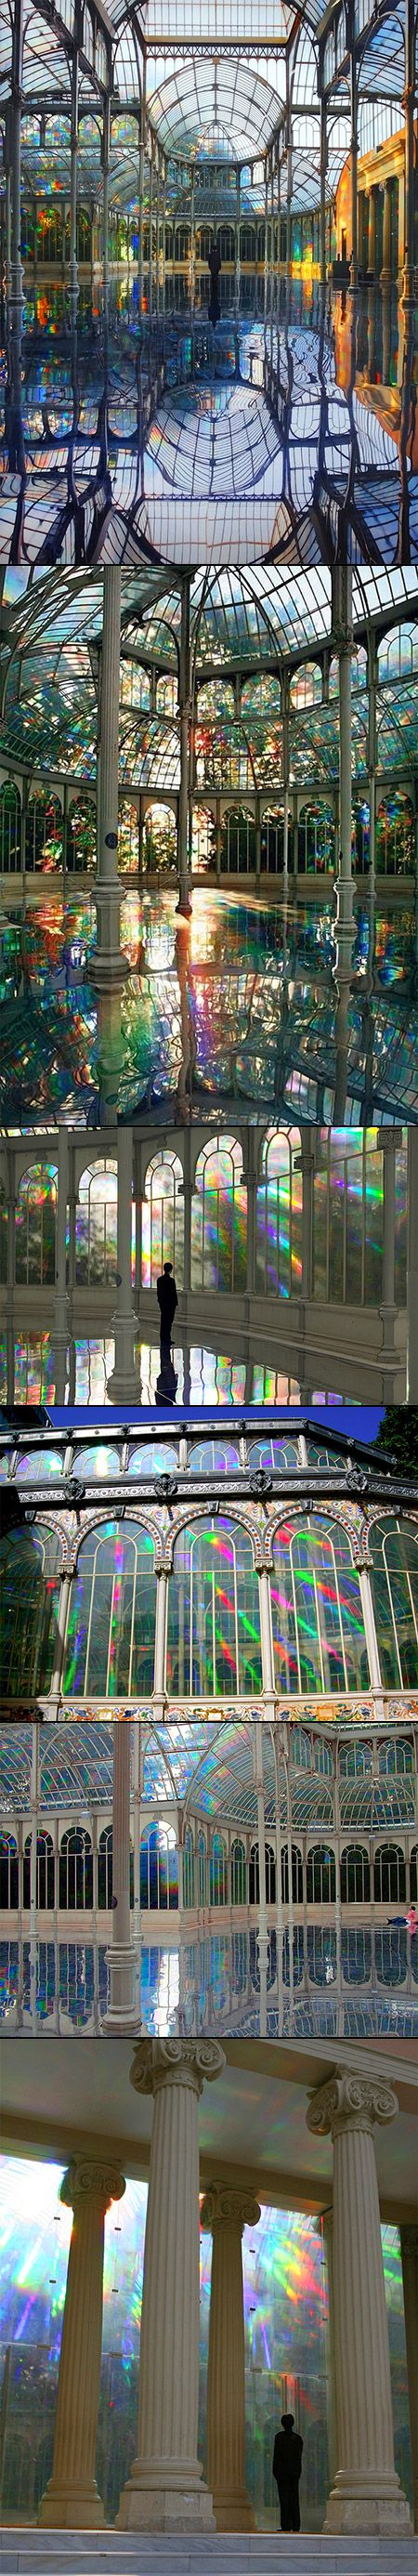 Palacio de Cristal (EN: Crystal Palace), 1887 Parque del Retiro, Madrid. Photo by José Luis Municio and Jaeho Chong (Kimsooja - To Breathe - A Mirror Woman, 2006)